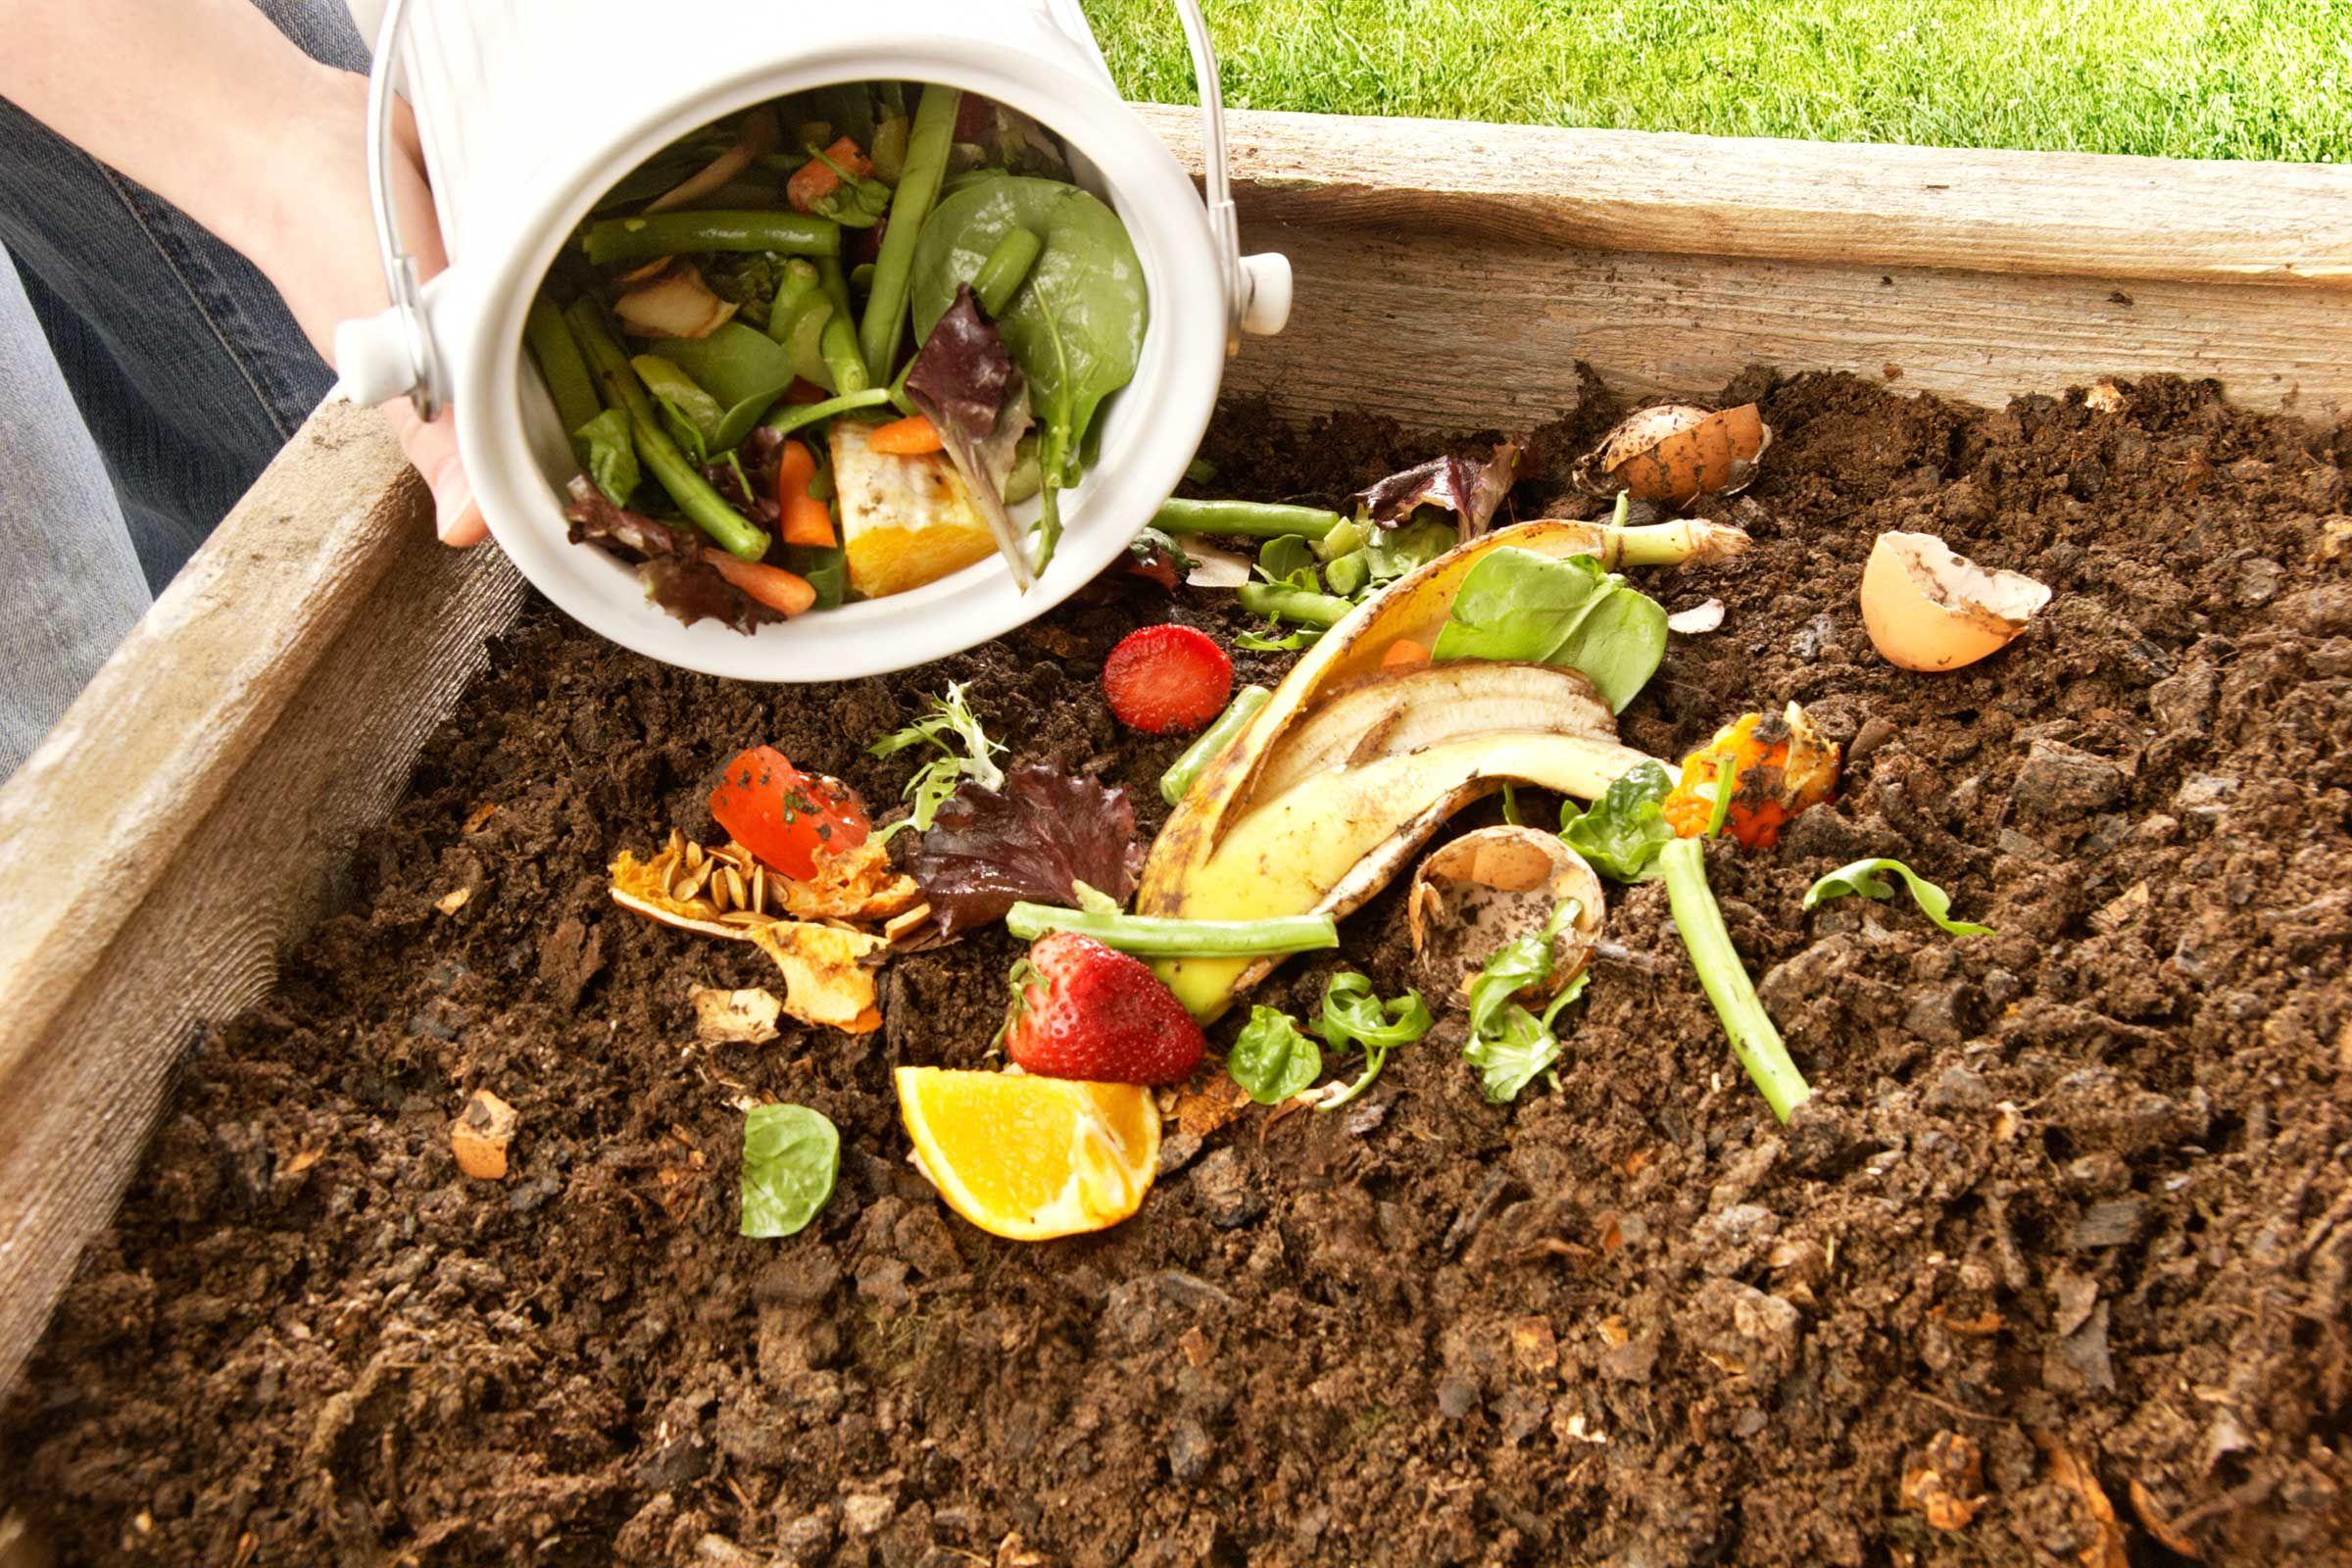 How to Compost: 10 Simple Steps to Get Started | Gardening ...